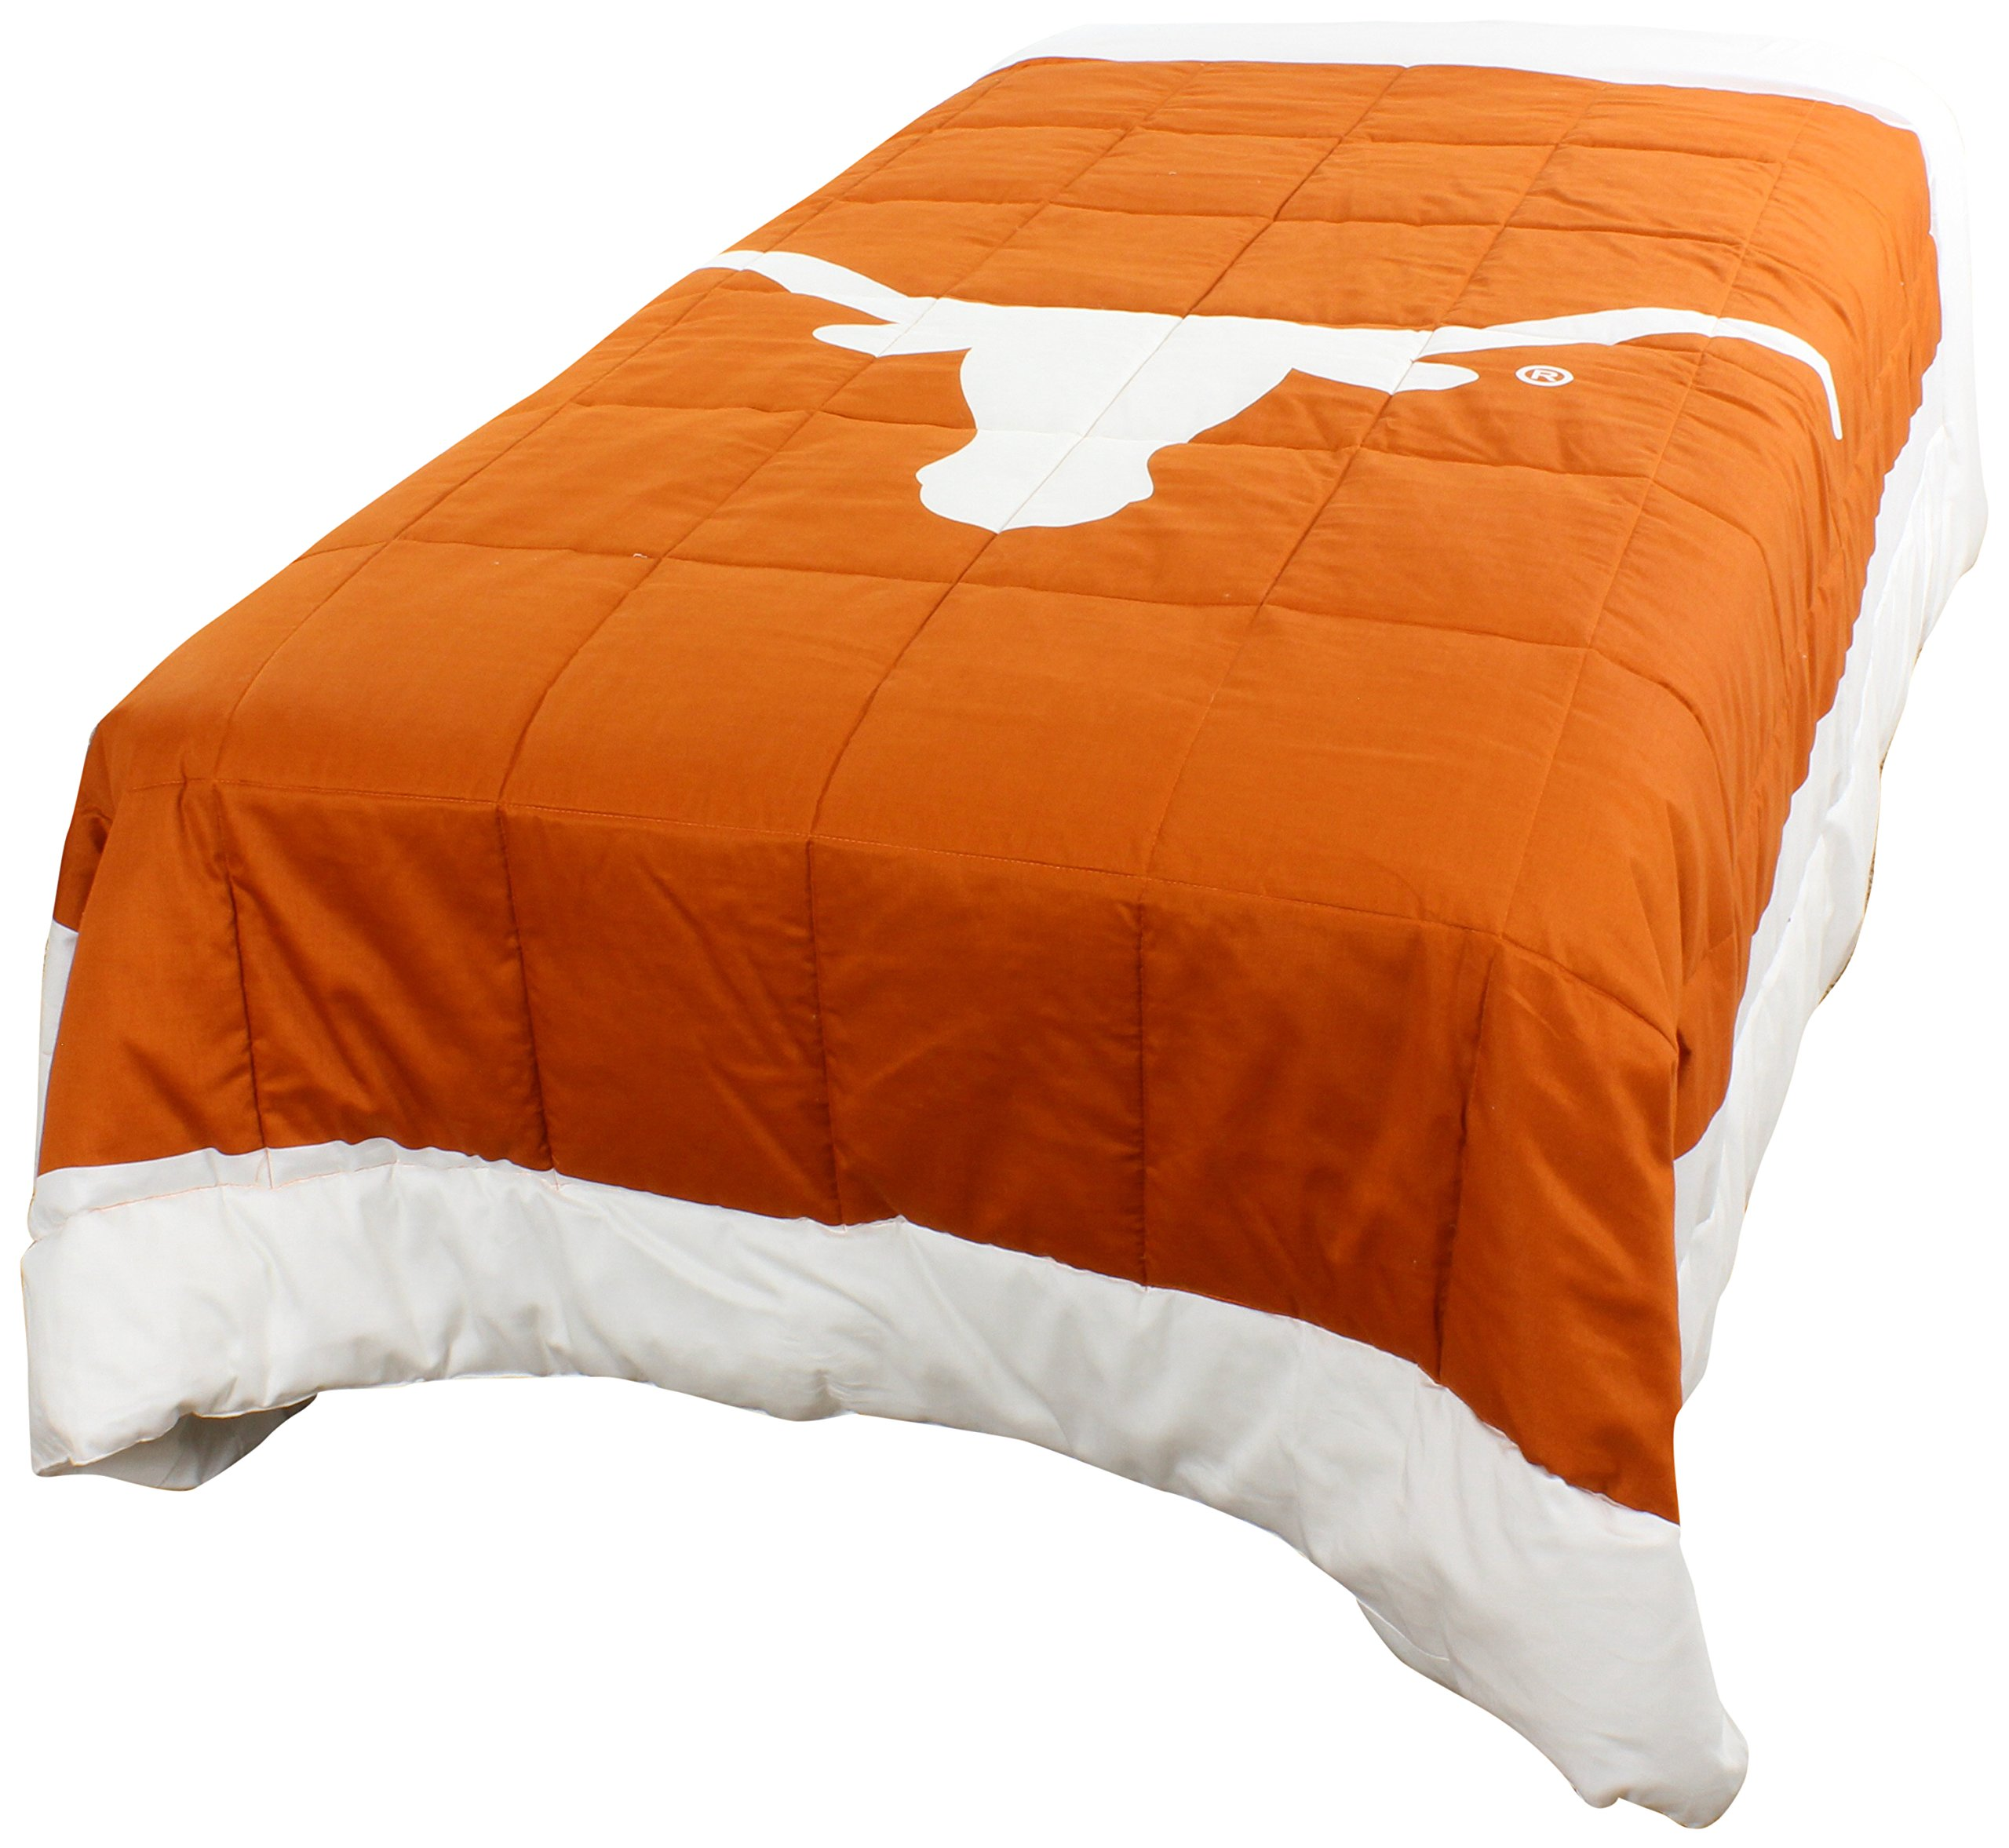 College Covers Texas Longhorns 2 Sided Reversible Comforter, Queen